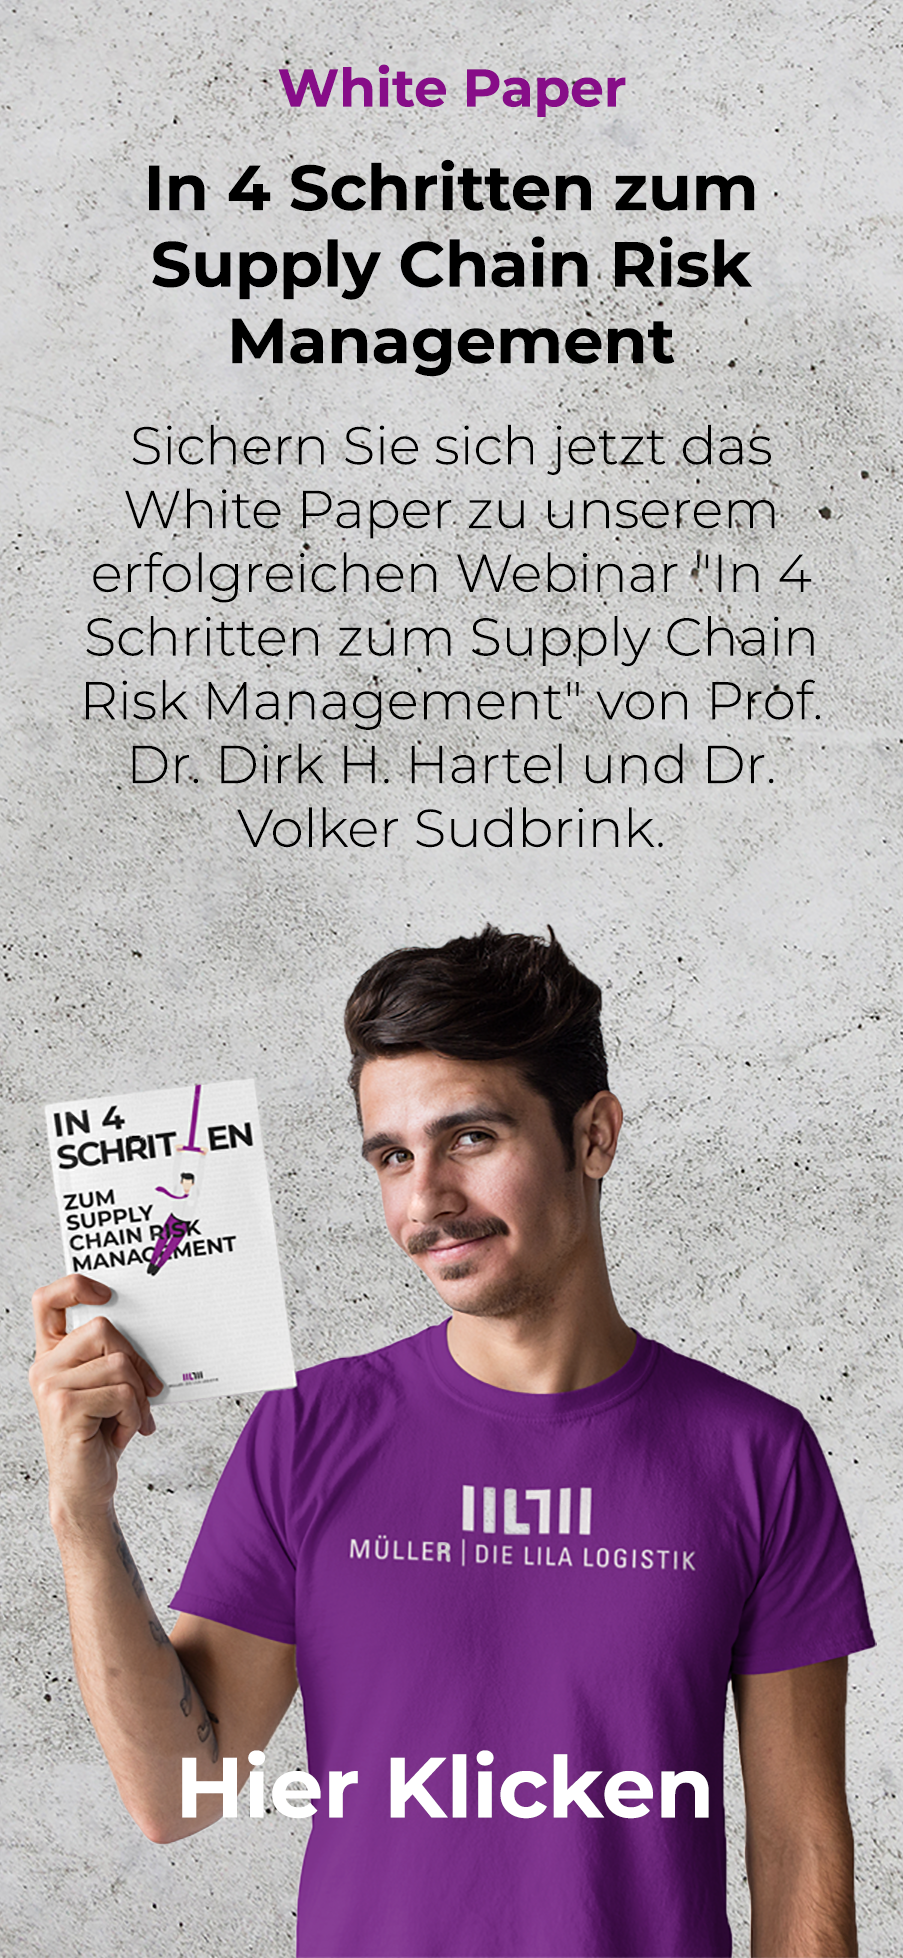 White Paper - Supply Chain Risk Management in 4 Schritten